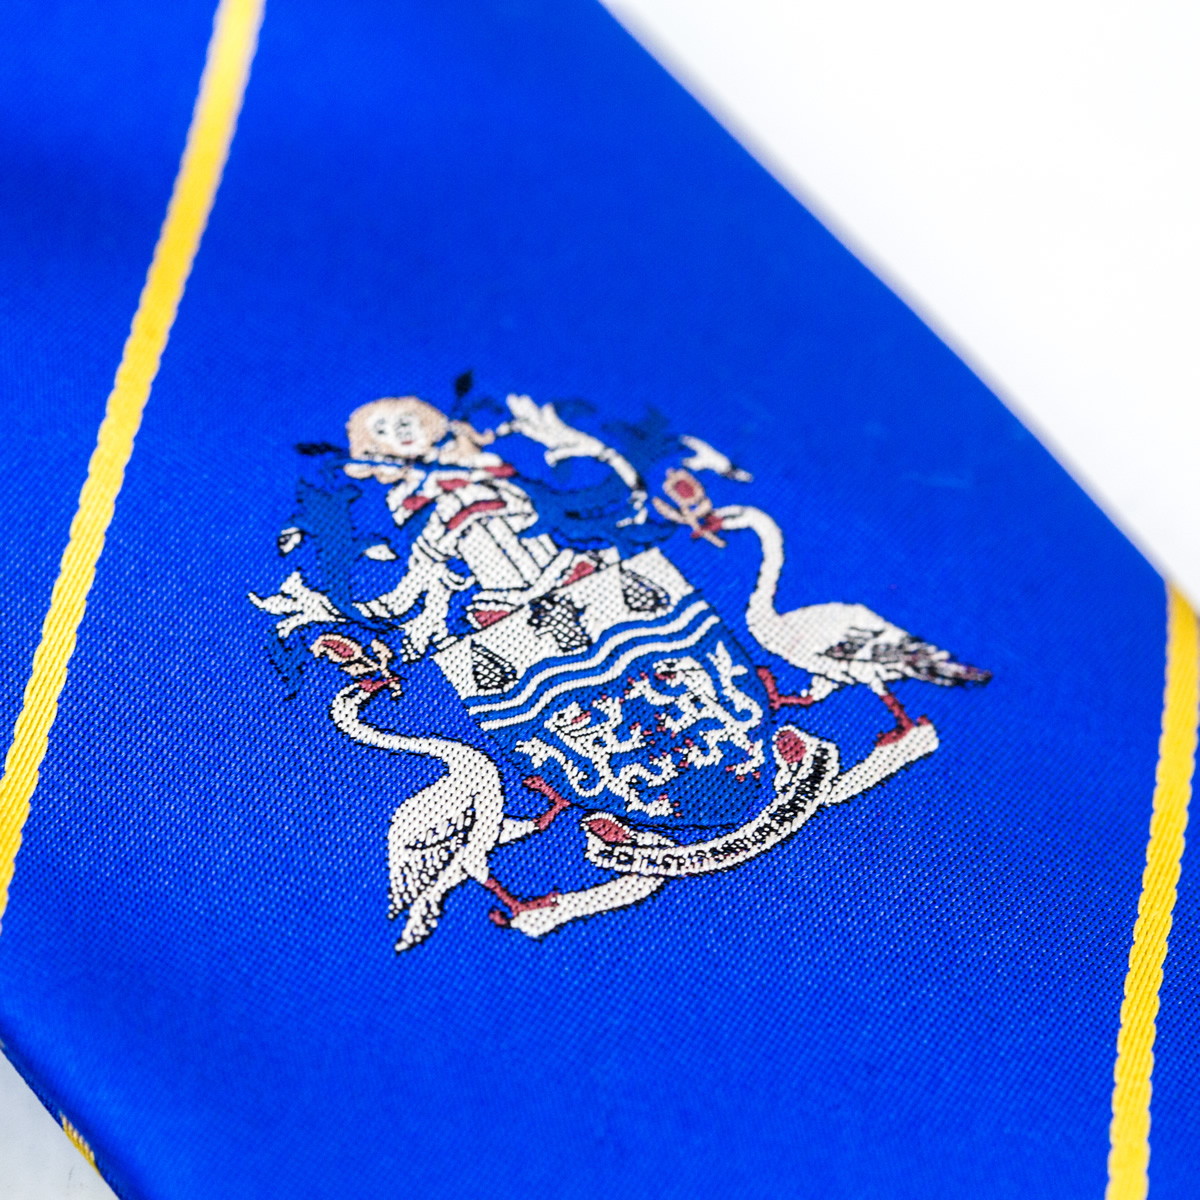 Close up of blue tie with embroidered logo